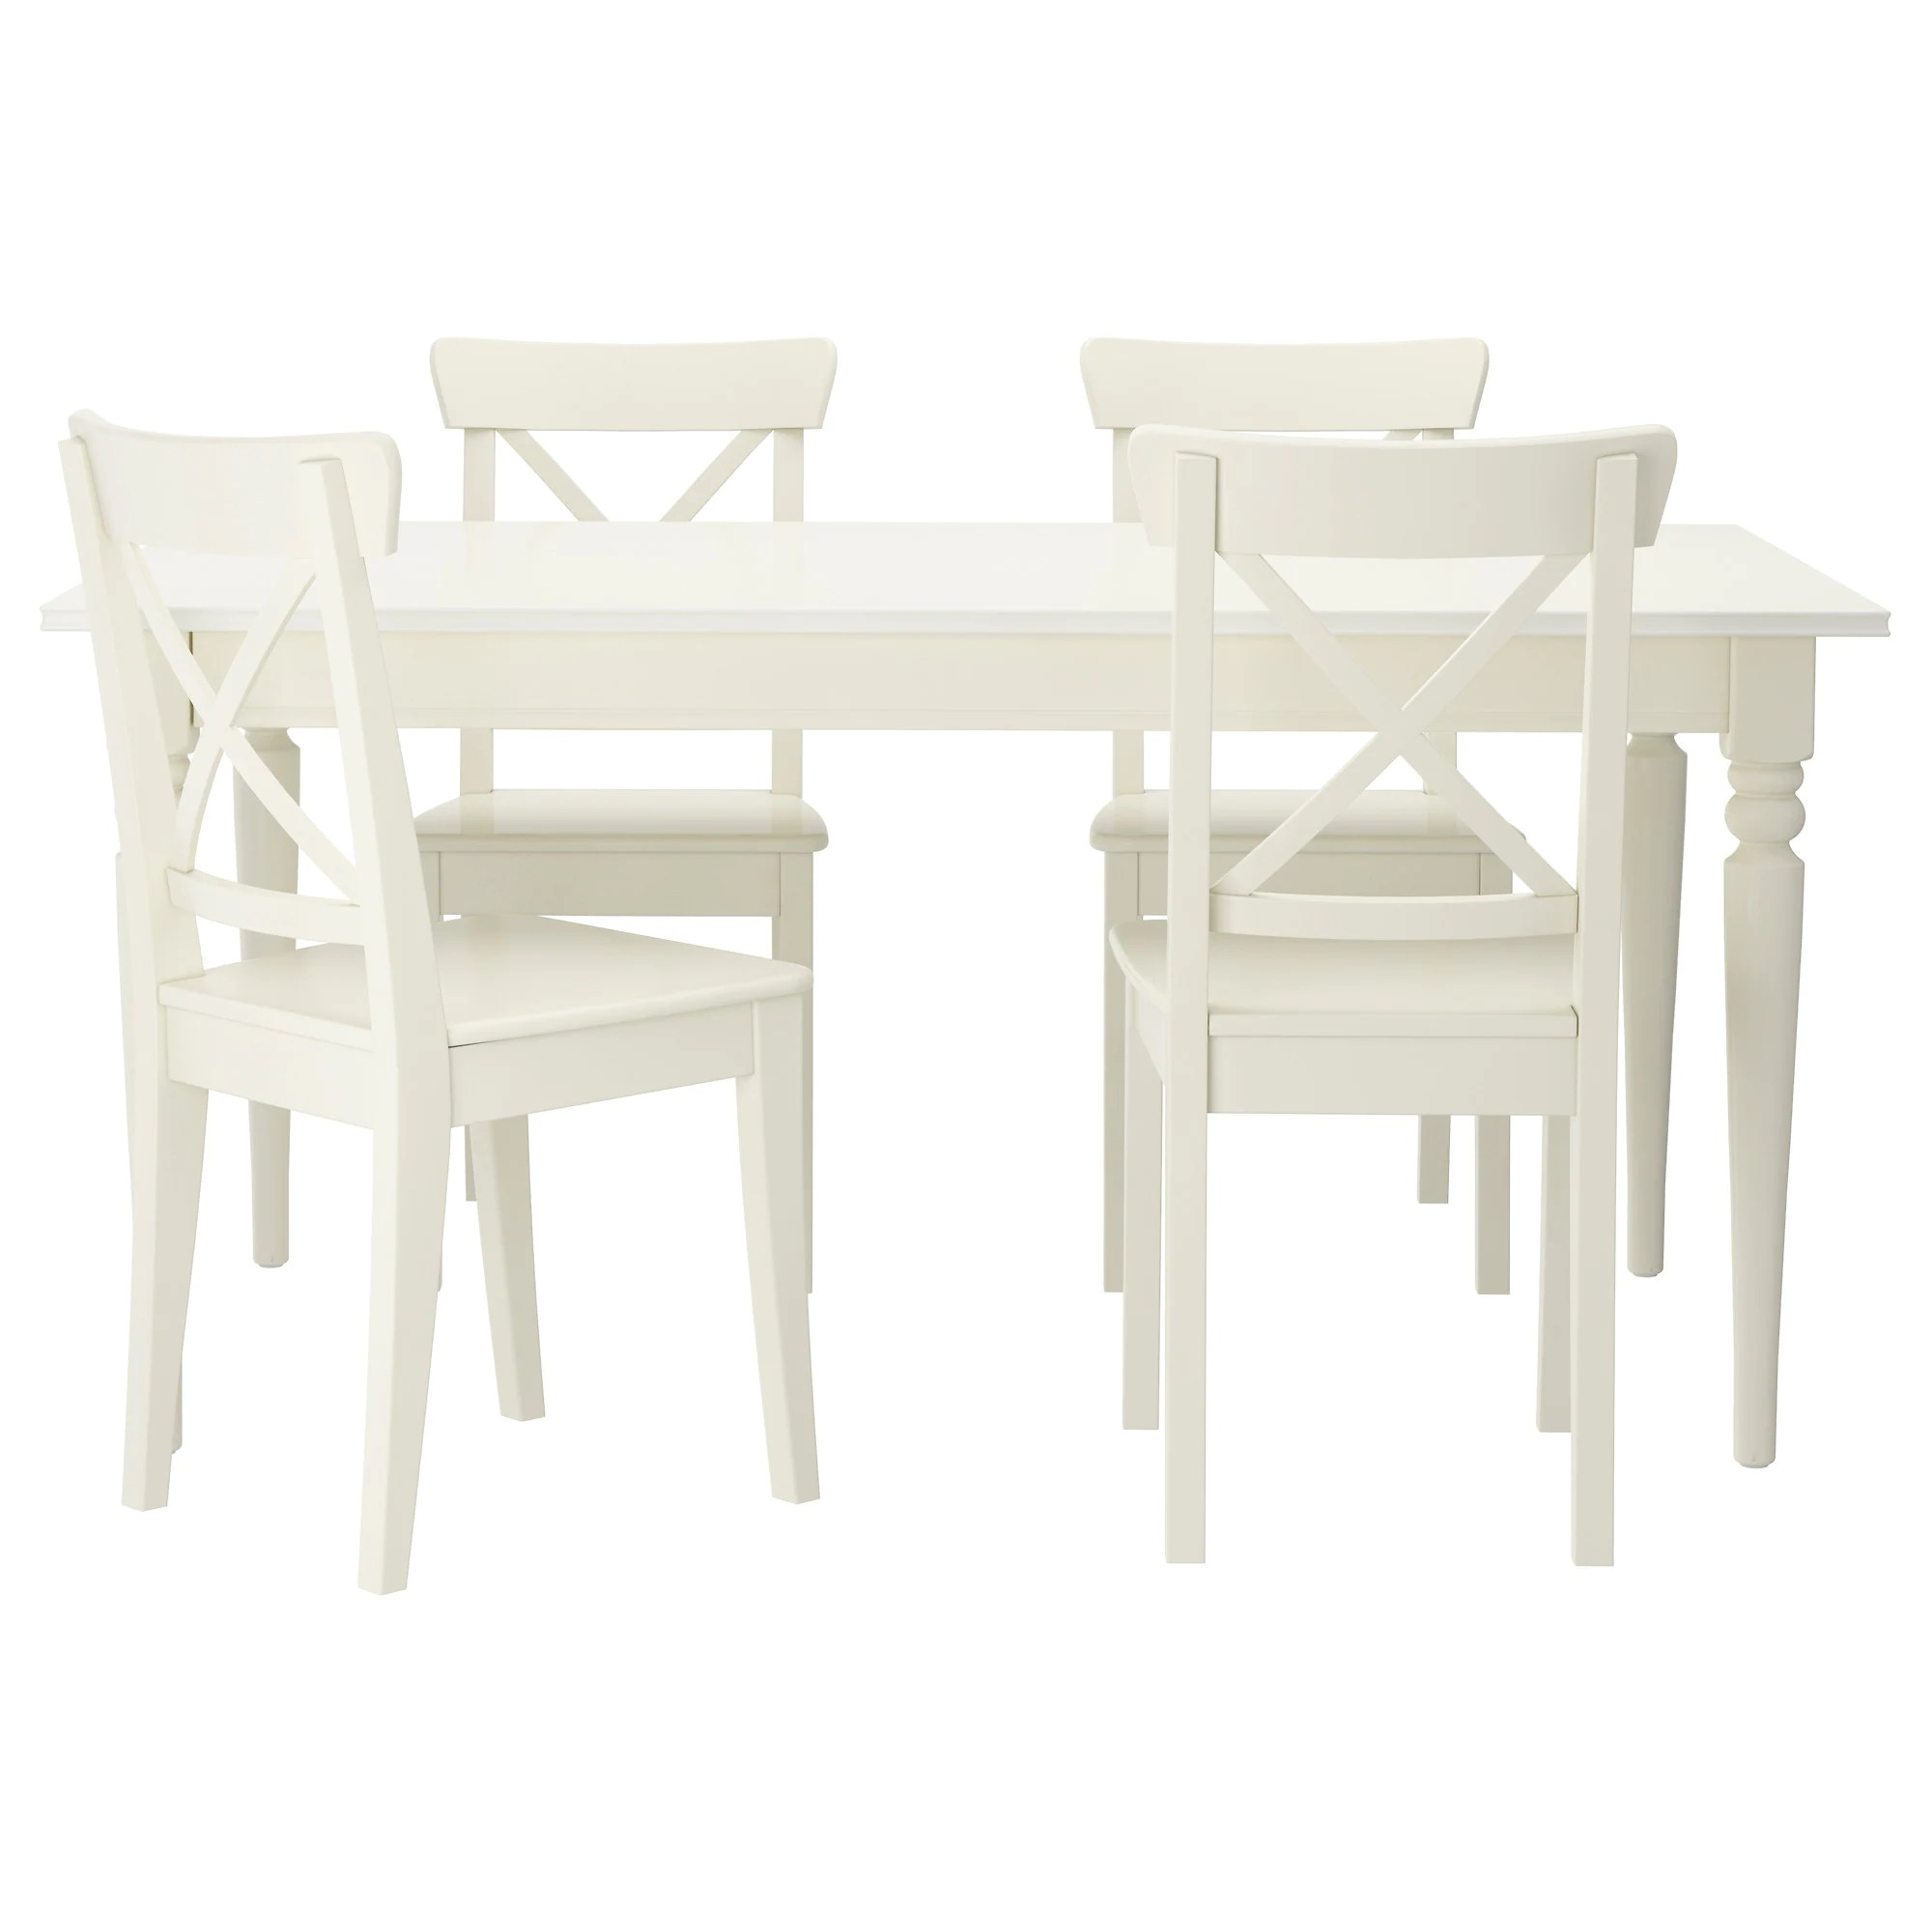 white table chairs high chair toy ingatorp ingolf and 4 ikea feedback